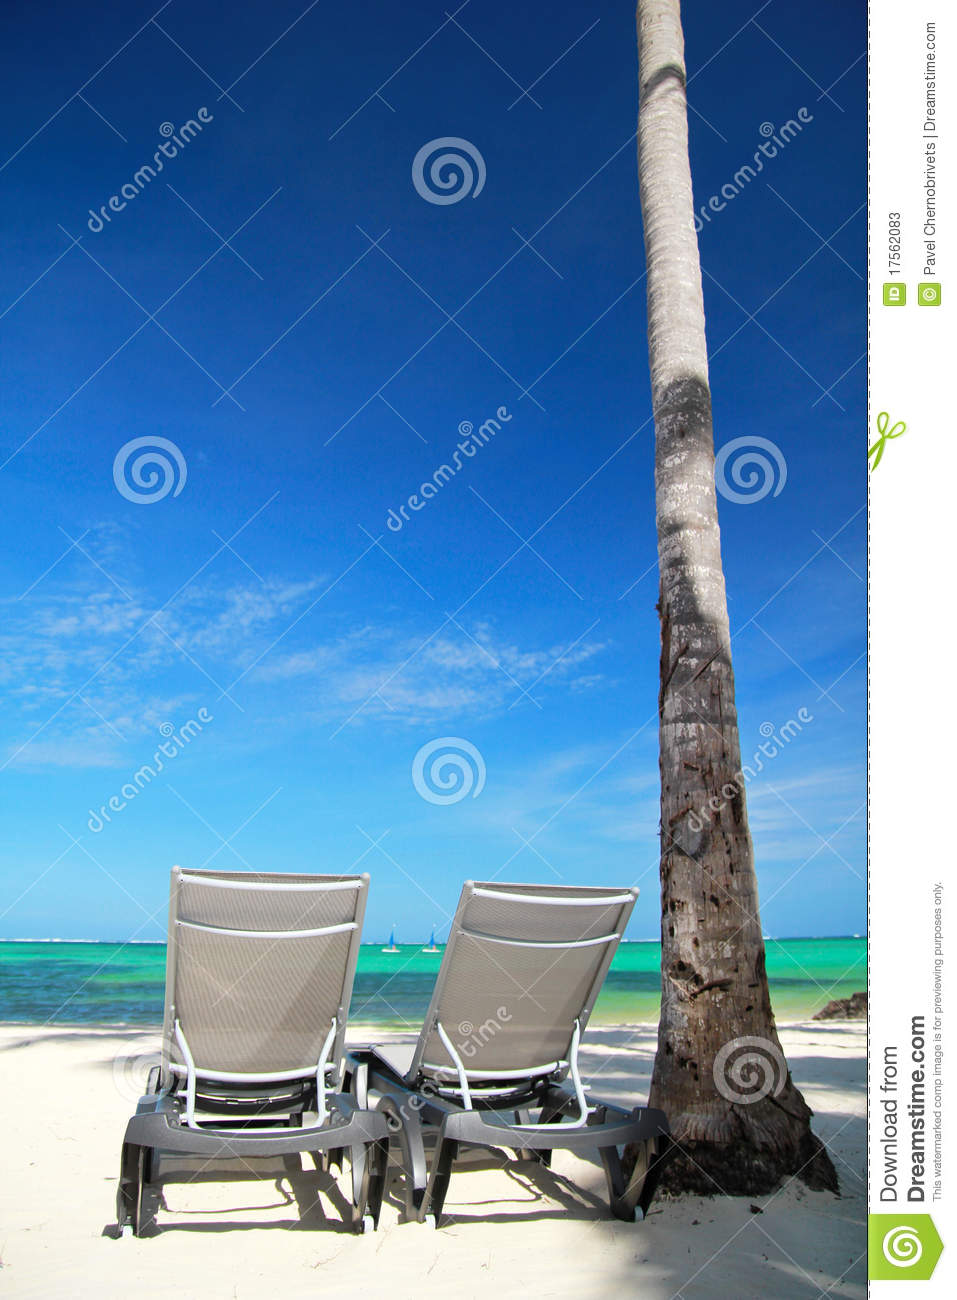 Chaise longues on tropical beach stock photos image for Beach chaise longue